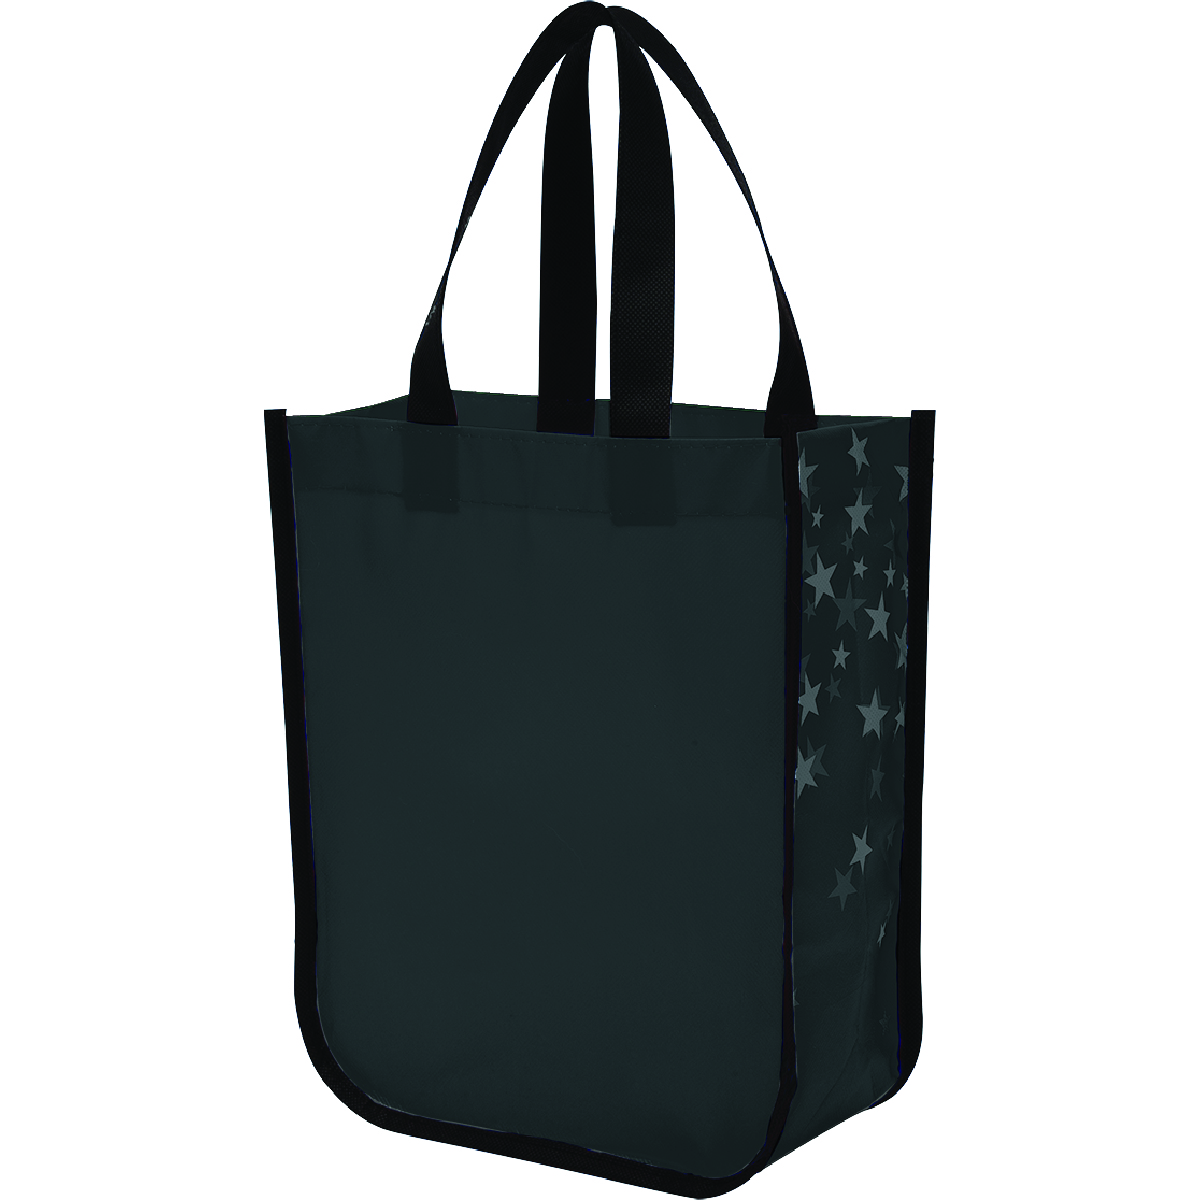 Black Star Struck Laminated Non-Woven Tote Bag